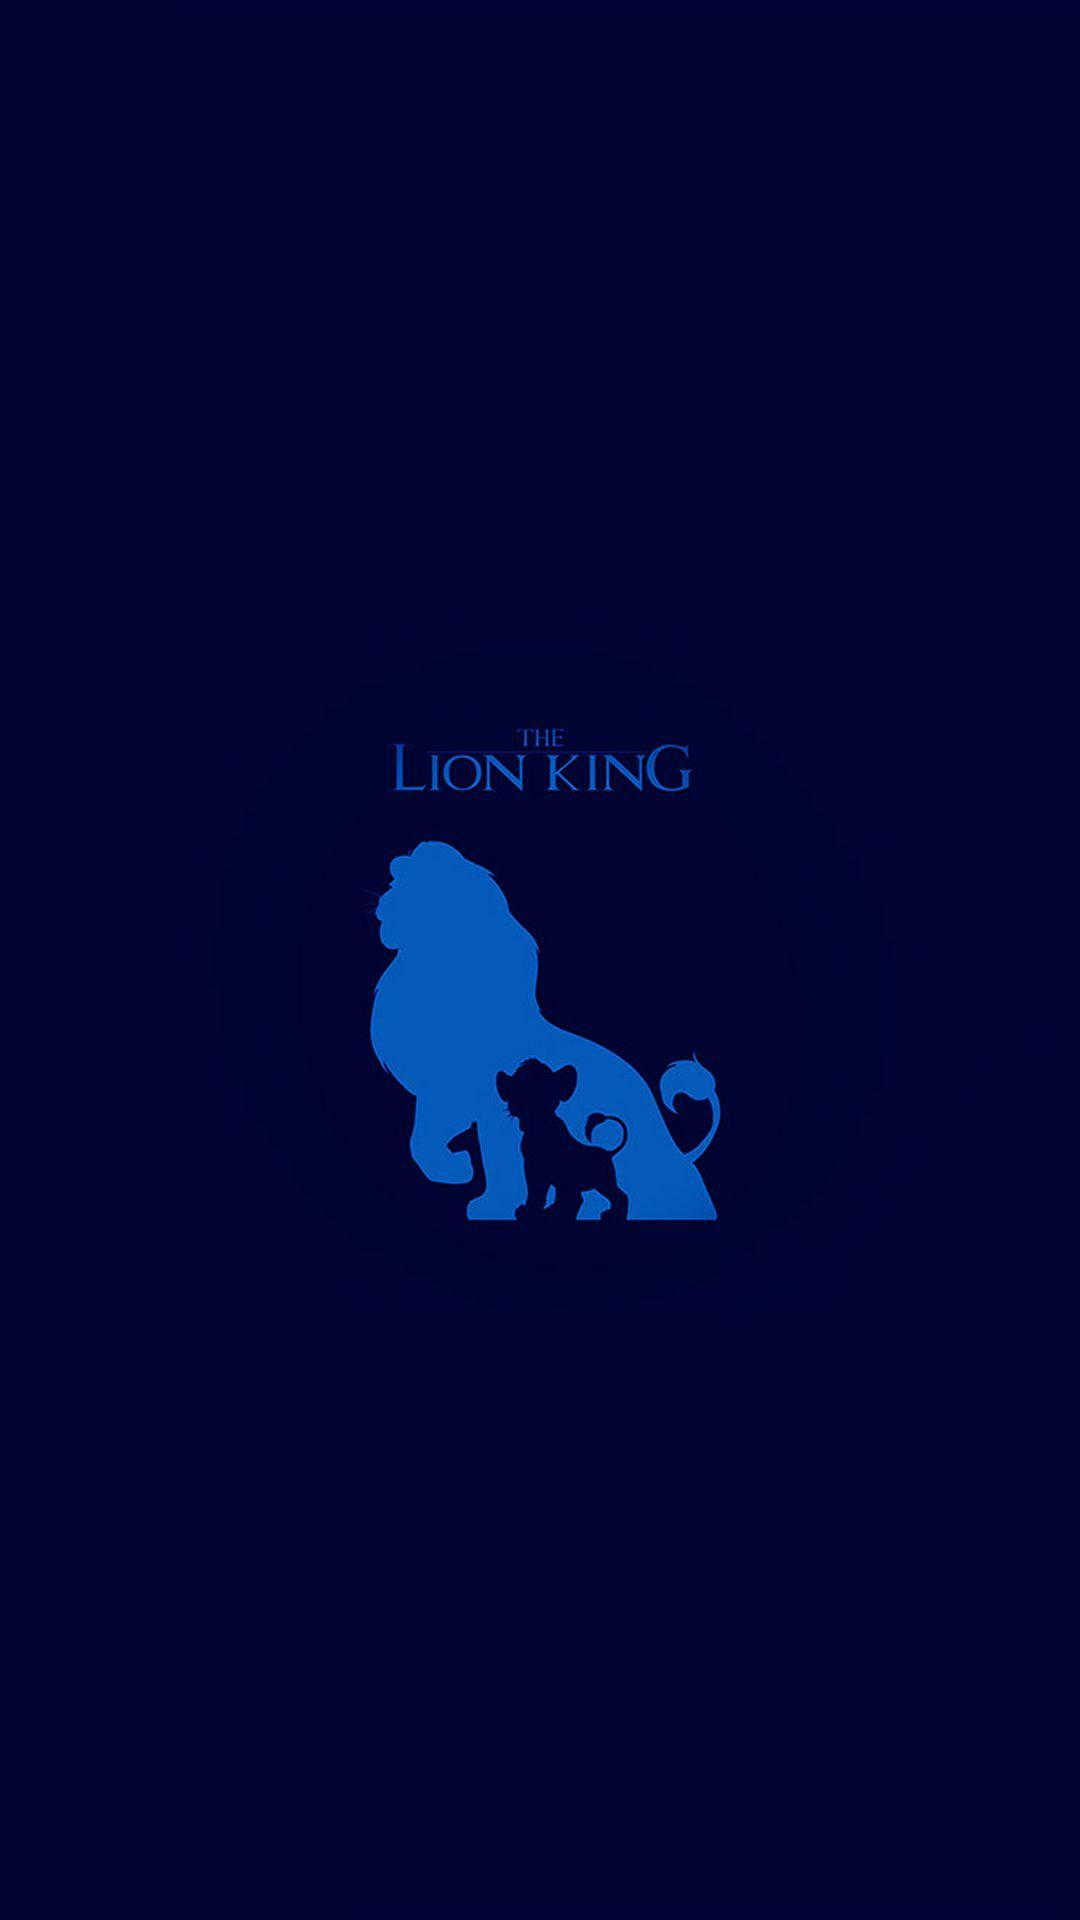 The Lion King Wallpapers Wallpaper Cave